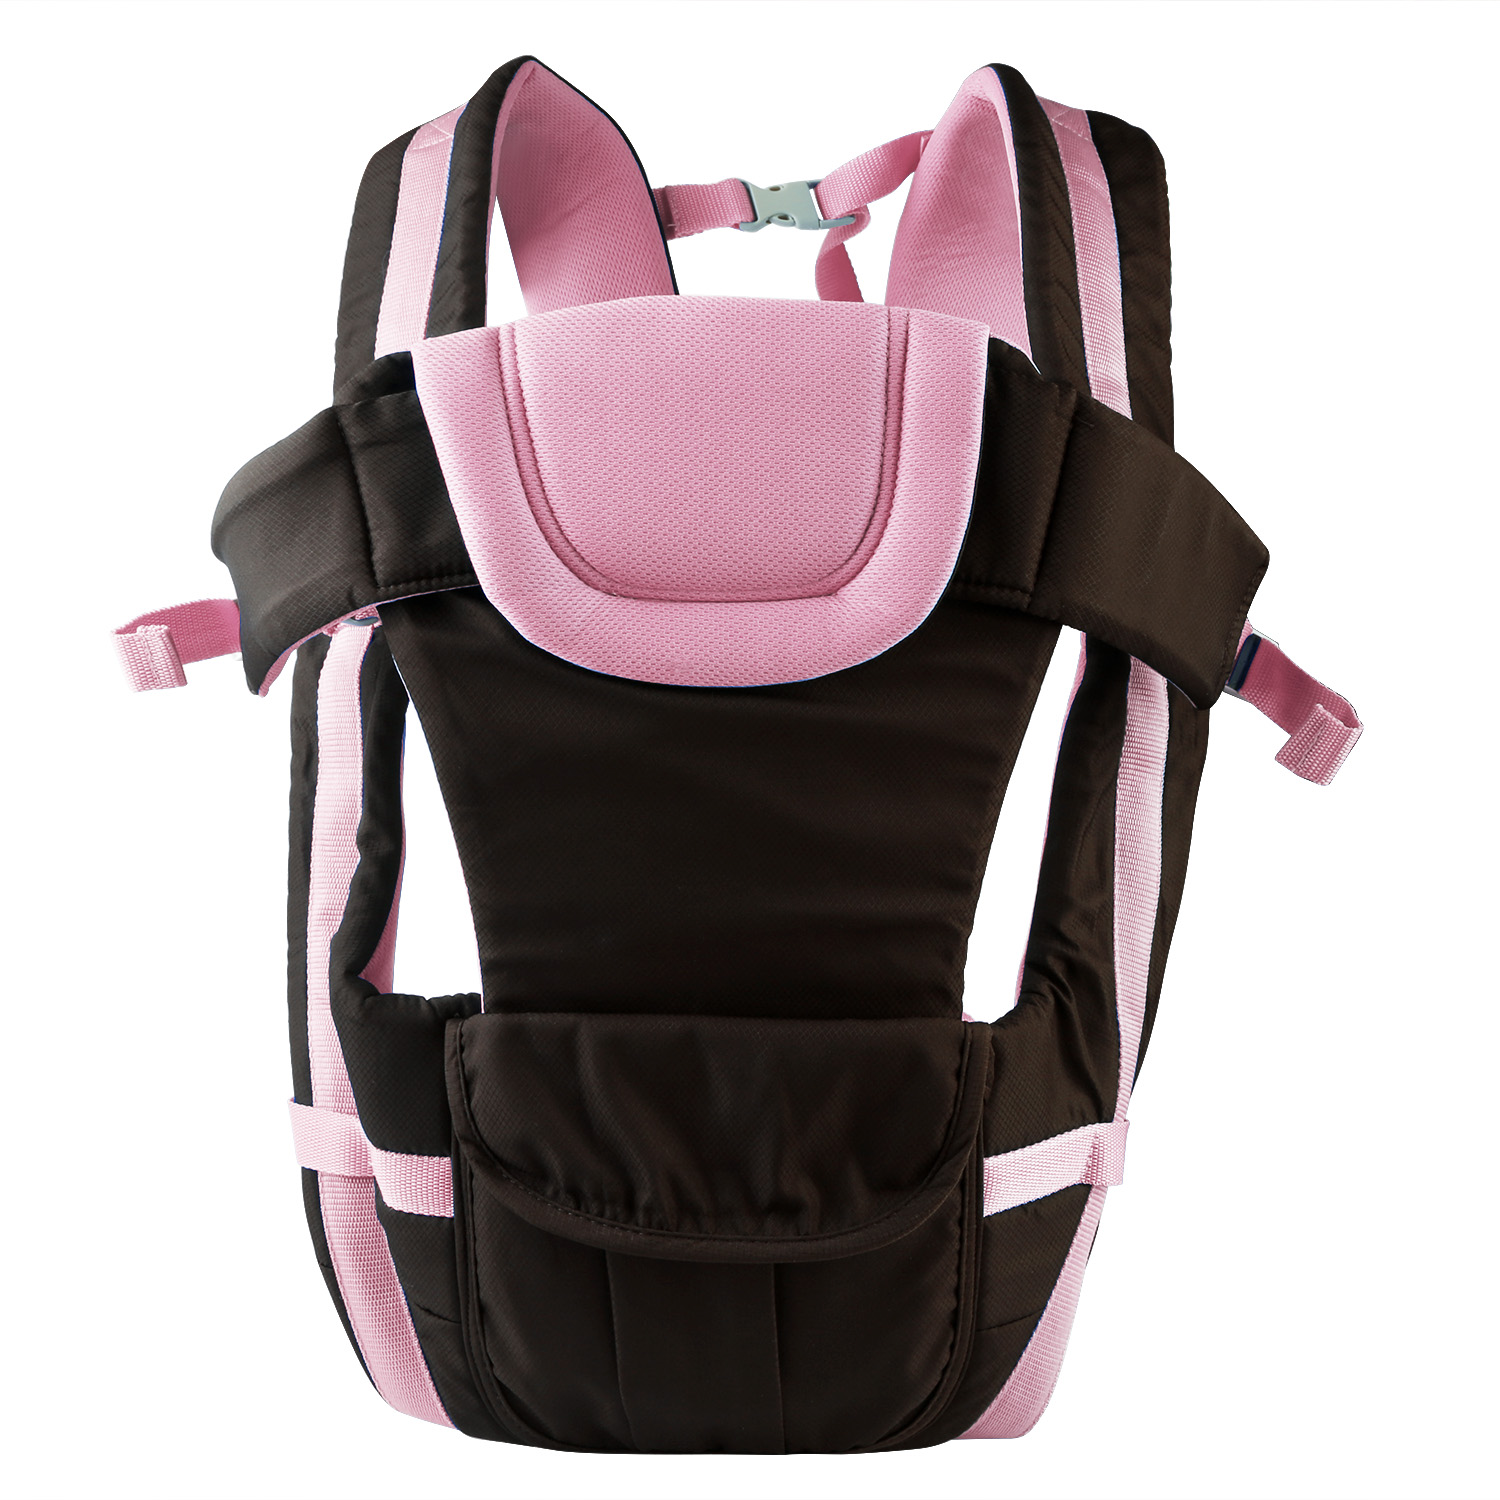 Pink Baby Carrier